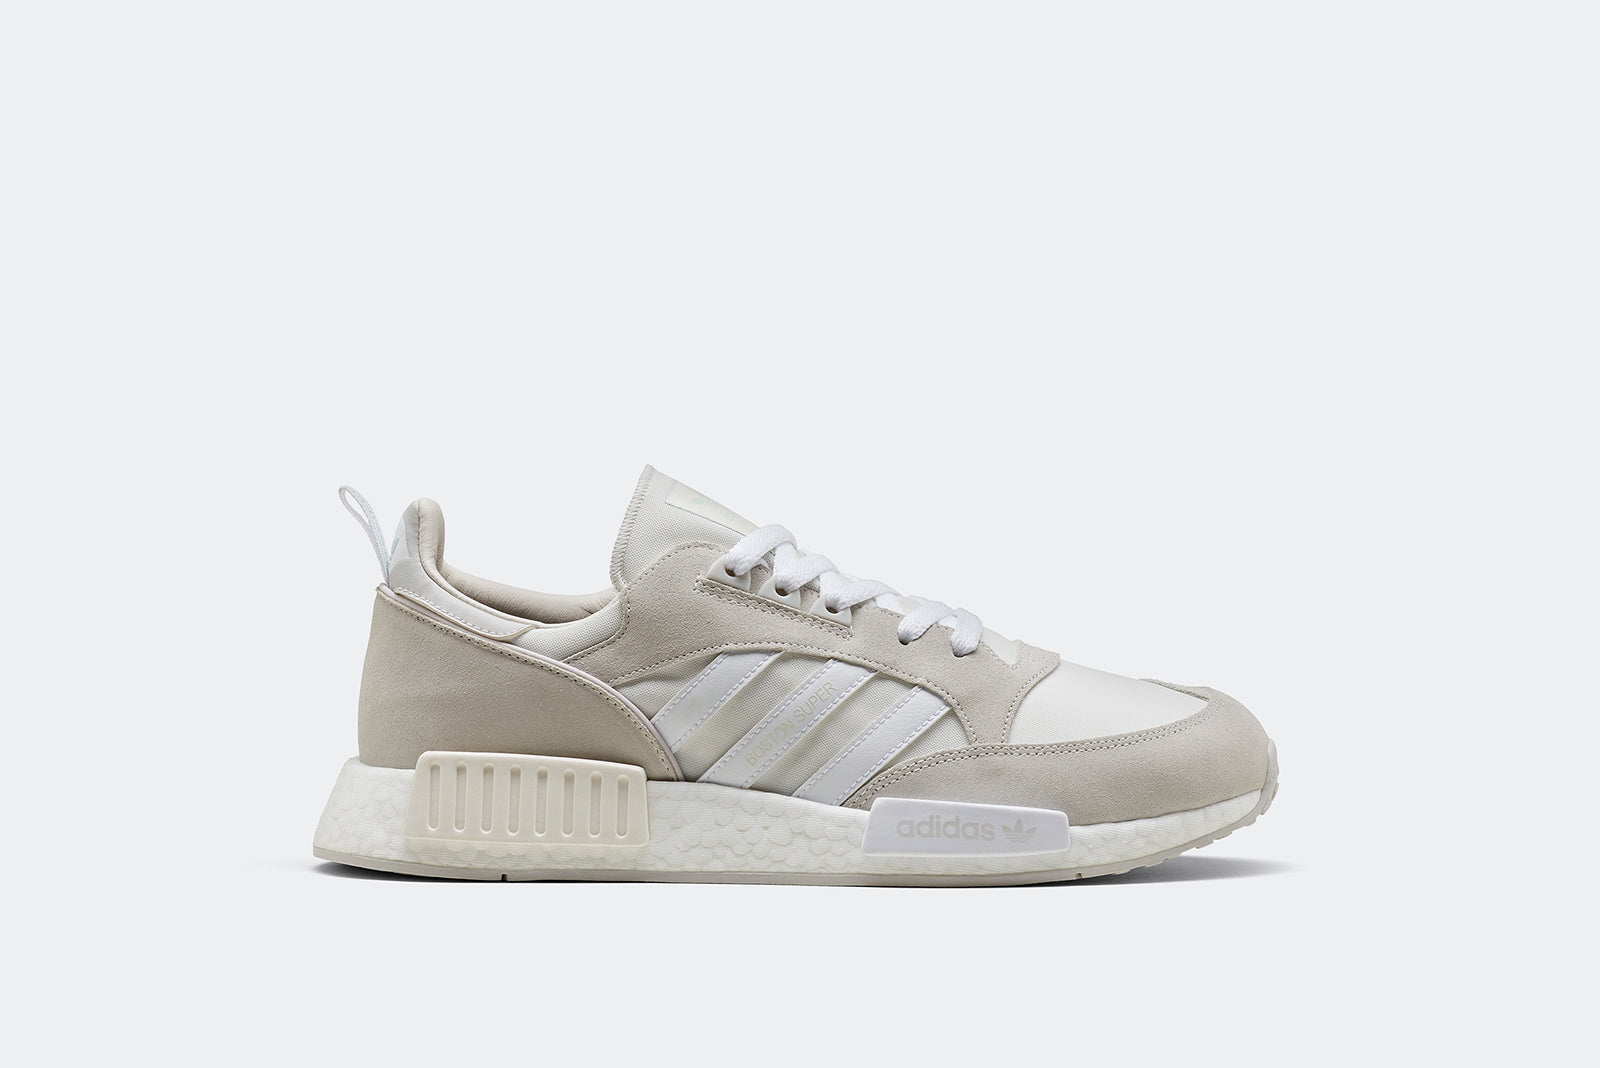 d19d128597c adidas Originals Boston Super x R1  Never made  G27834 CLOWHI FTWWHT GREONE  Price  £109.00. Launch  Sunday 18th of November ONLINE  23 00GMT